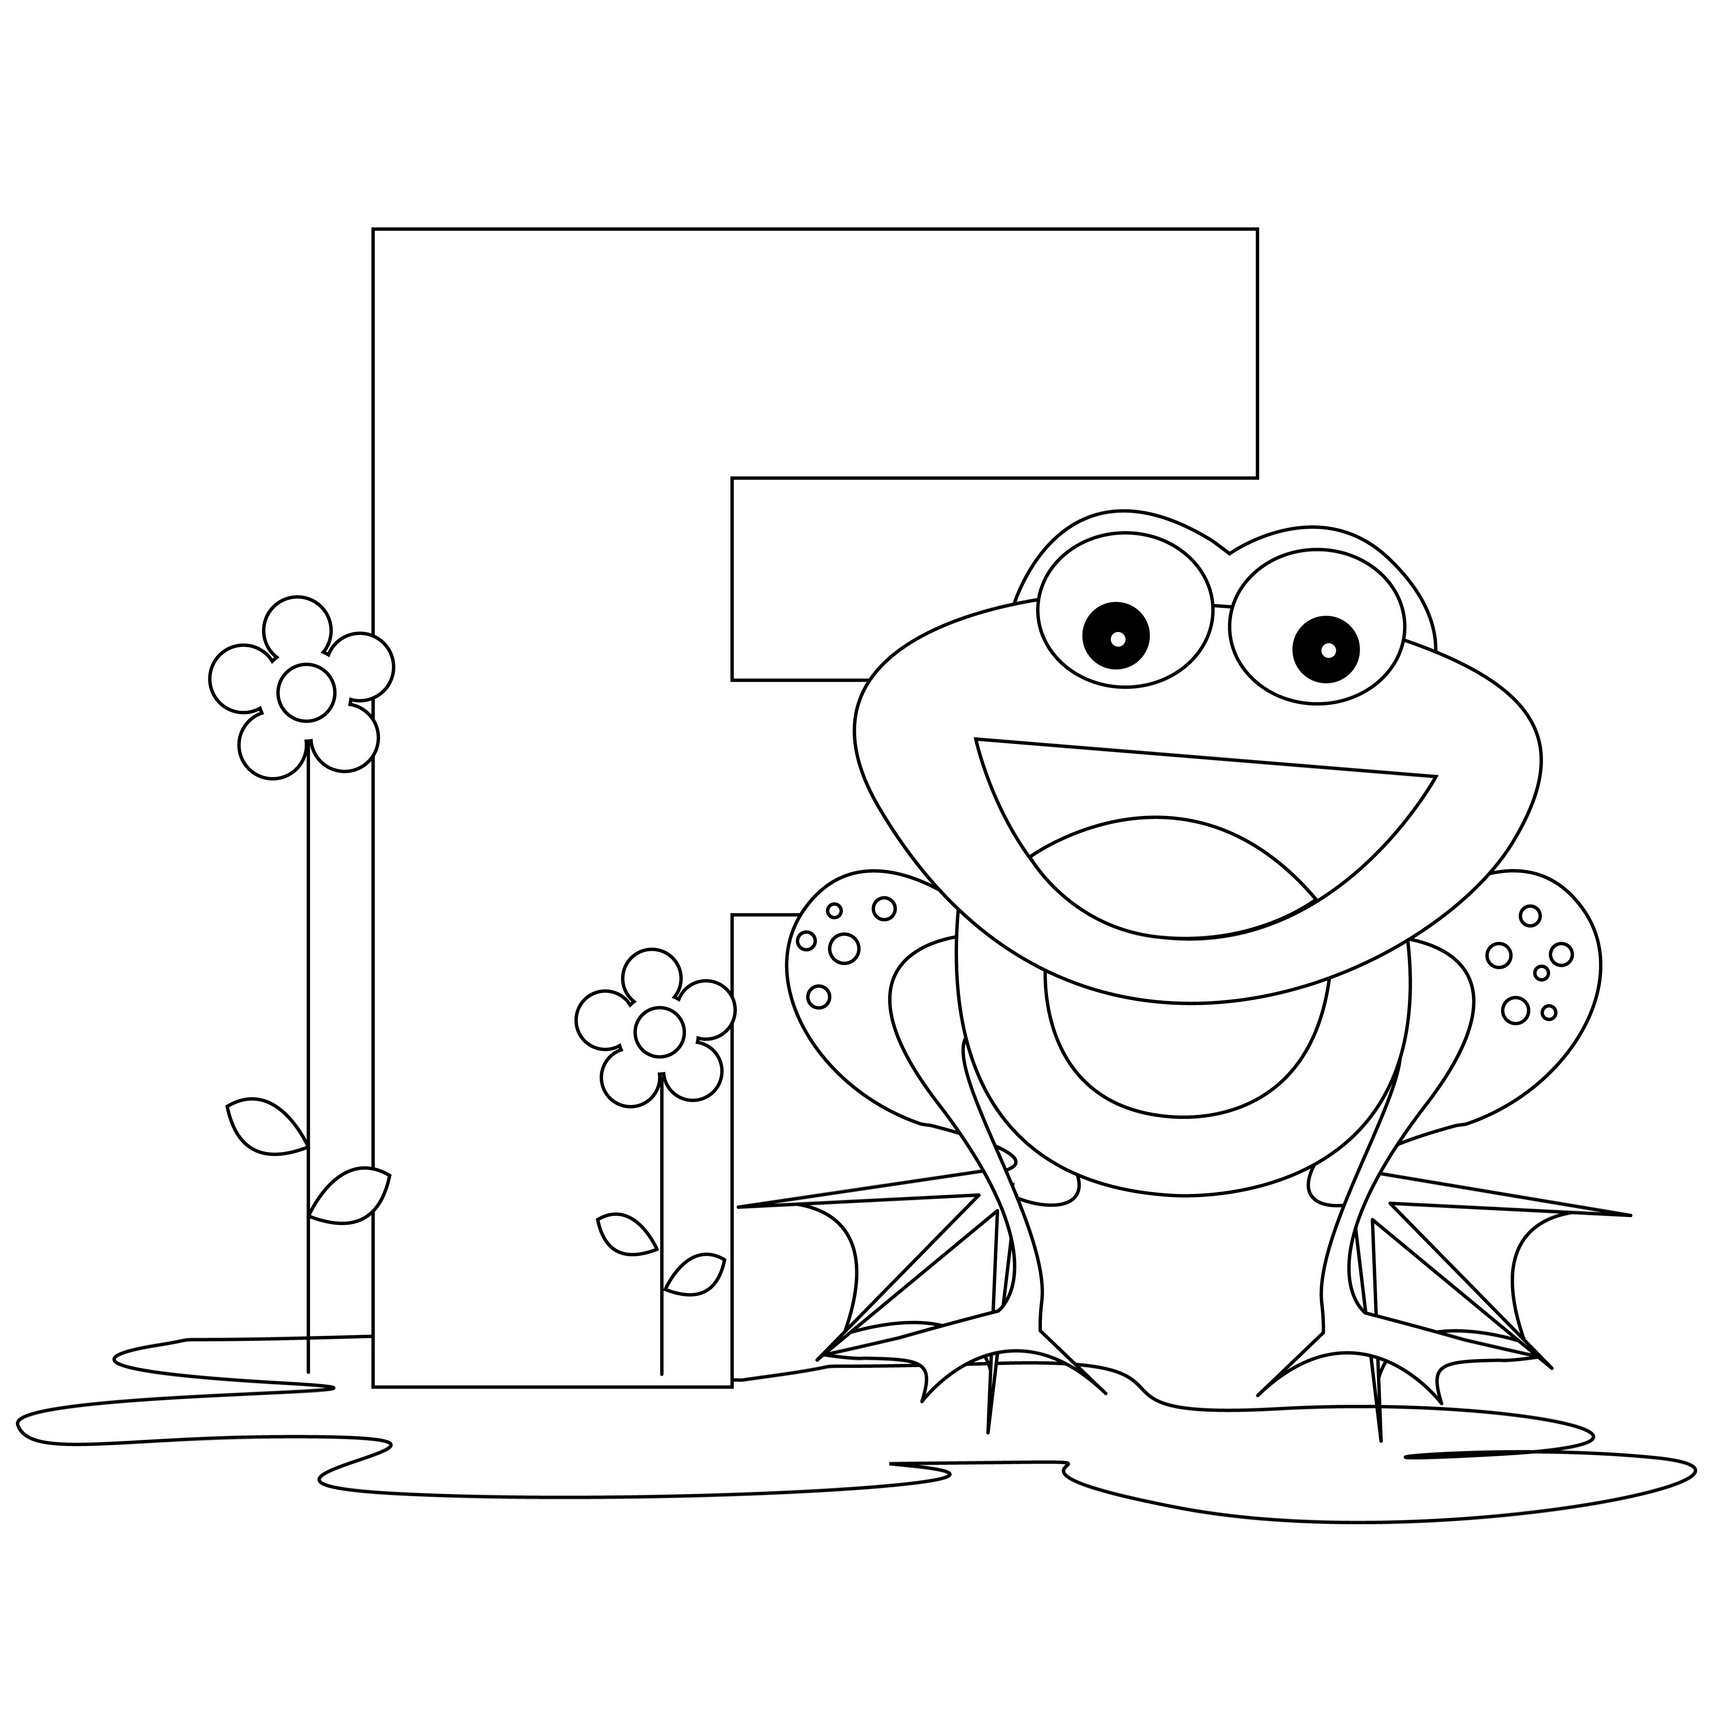 letter f coloring sheet letter f coloring sheet sheet letter coloring f